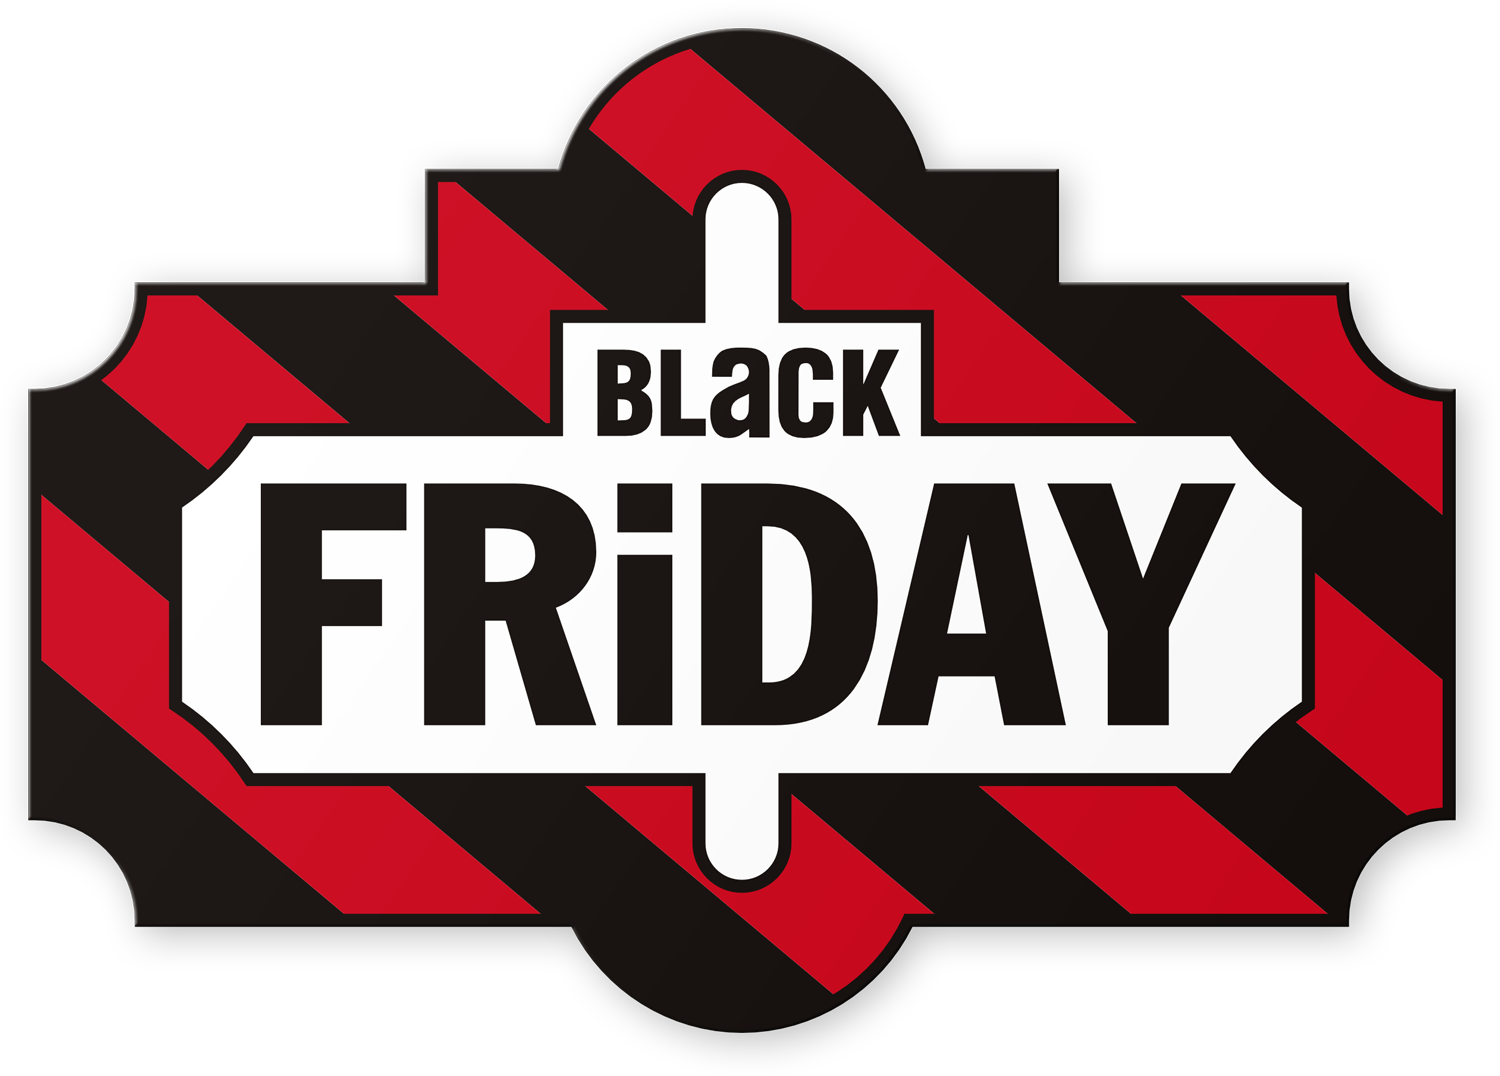 black friday png ? - Black Friday PNG